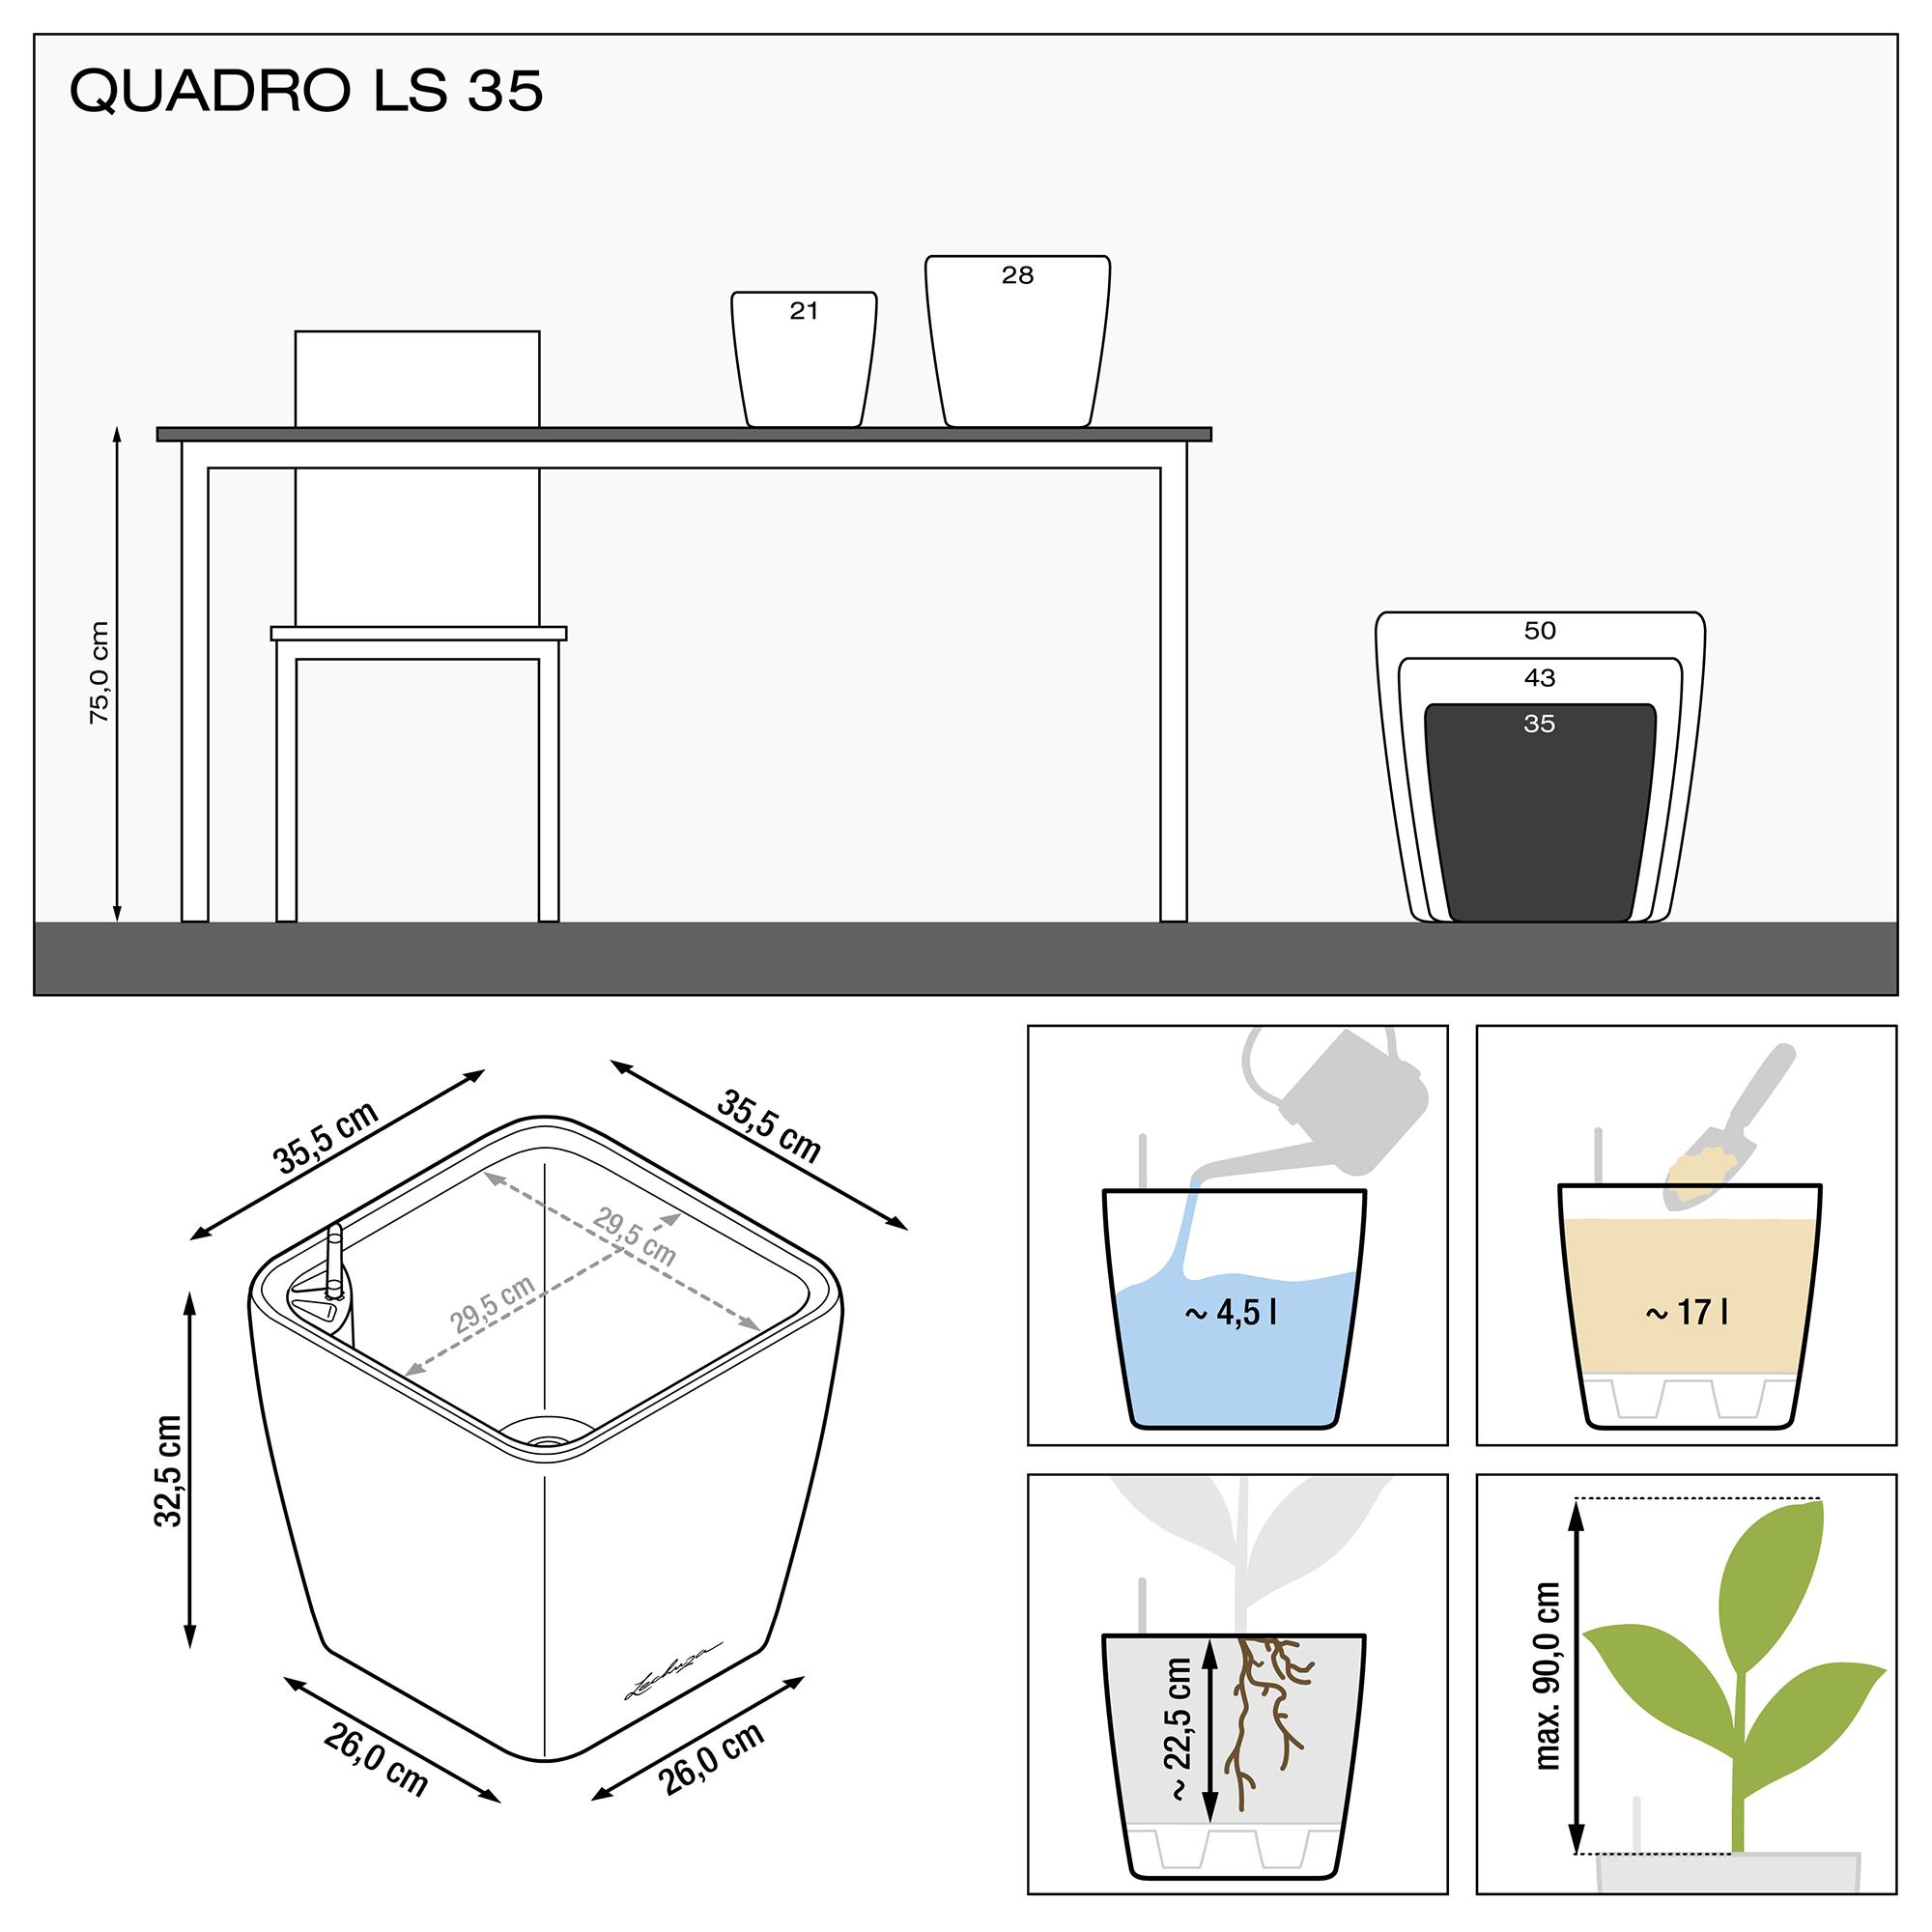 QUADRO LS 35 white high-gloss - Image 3